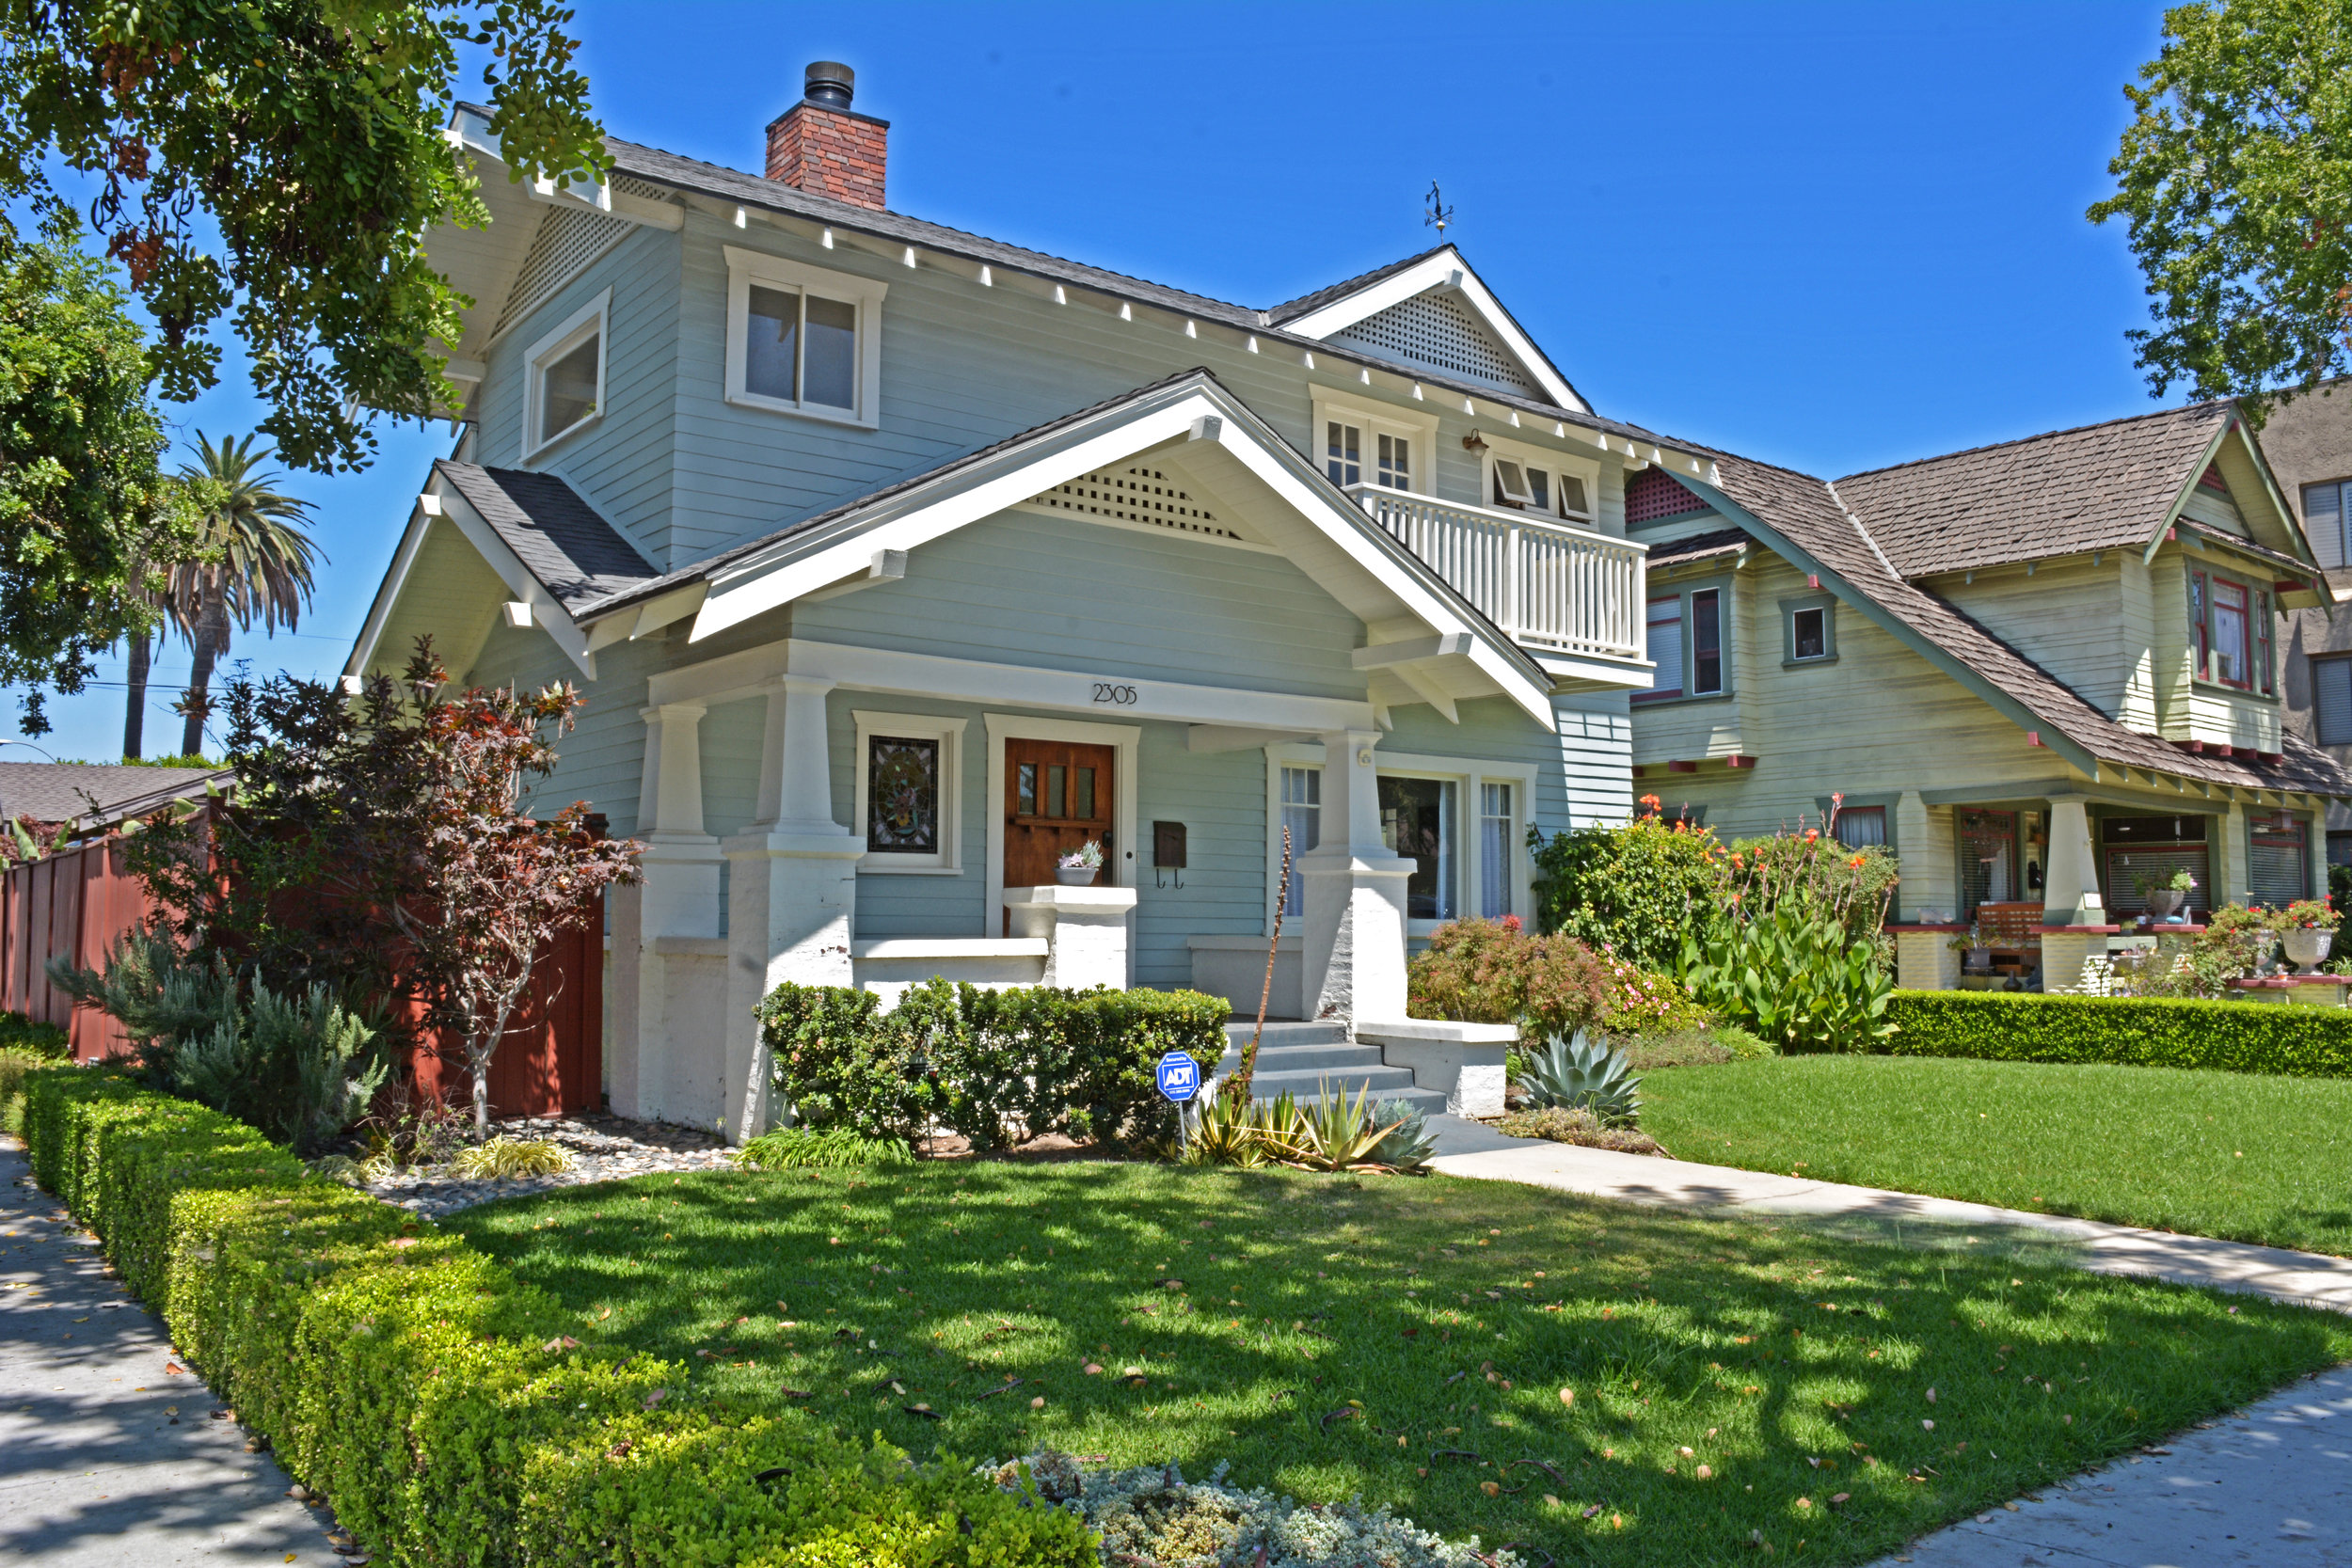 4 Bed / 2 Bath 2,026 sq. ft. Listed at  $995,000